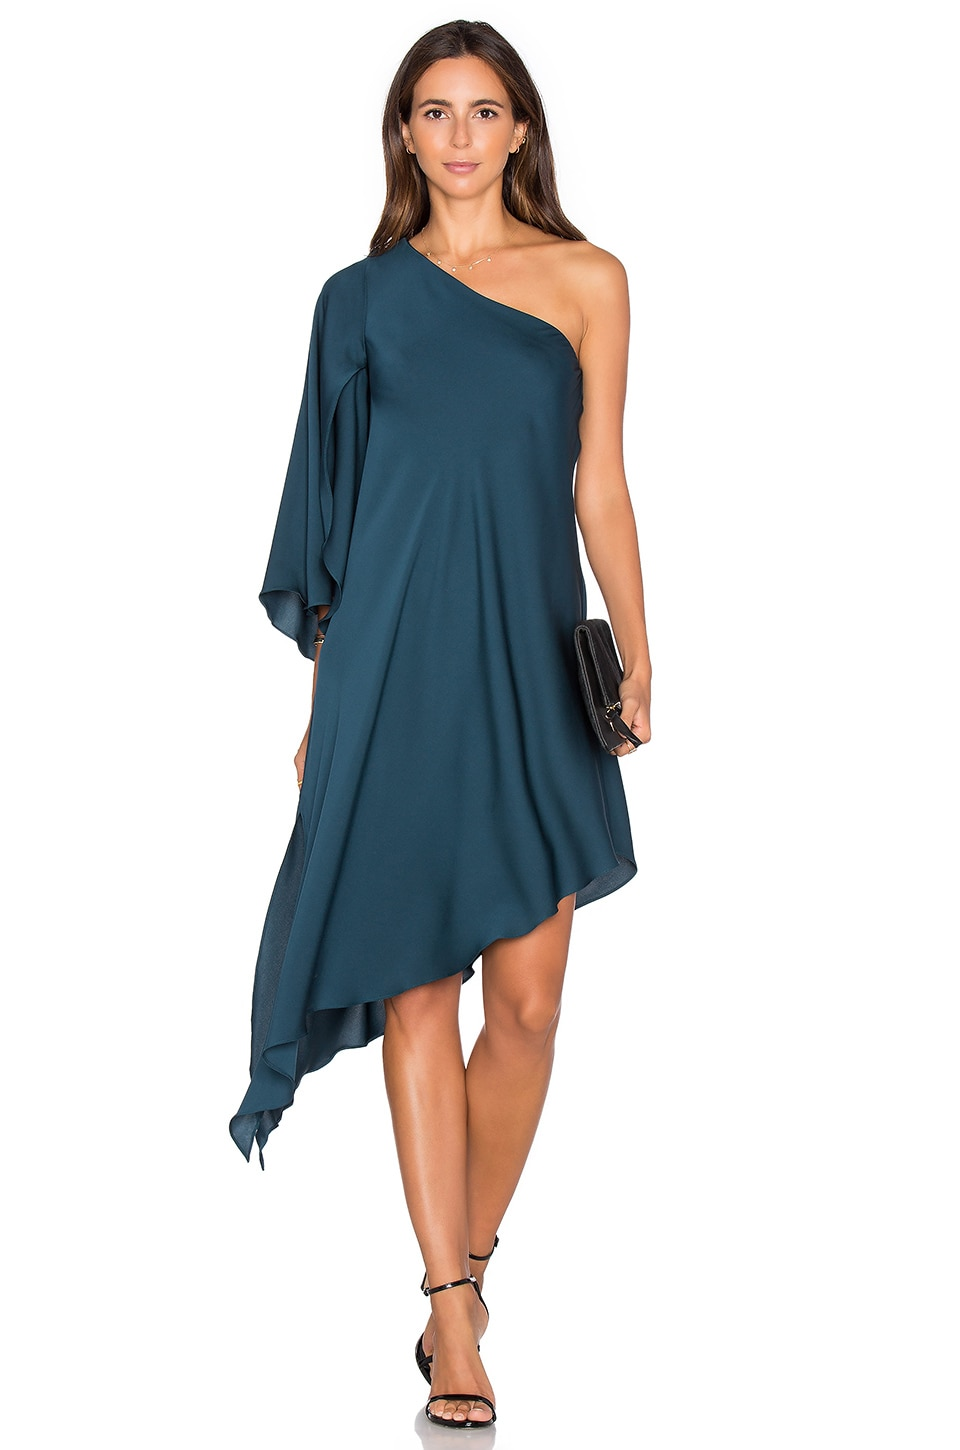 MILLY Tori One Shoulder Dress in Peacock